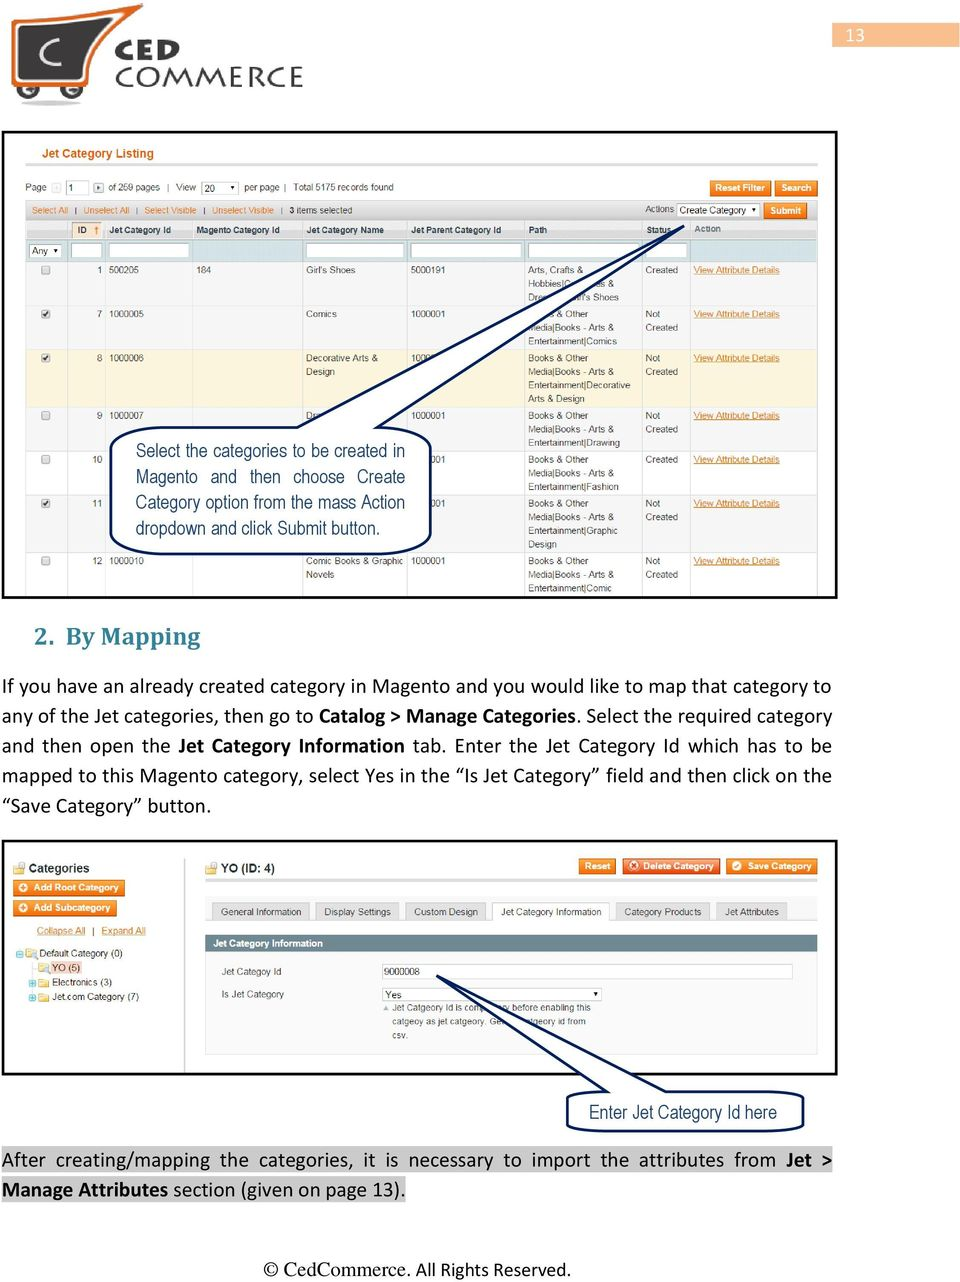 Select the required category and then open the Jet Category Information tab.